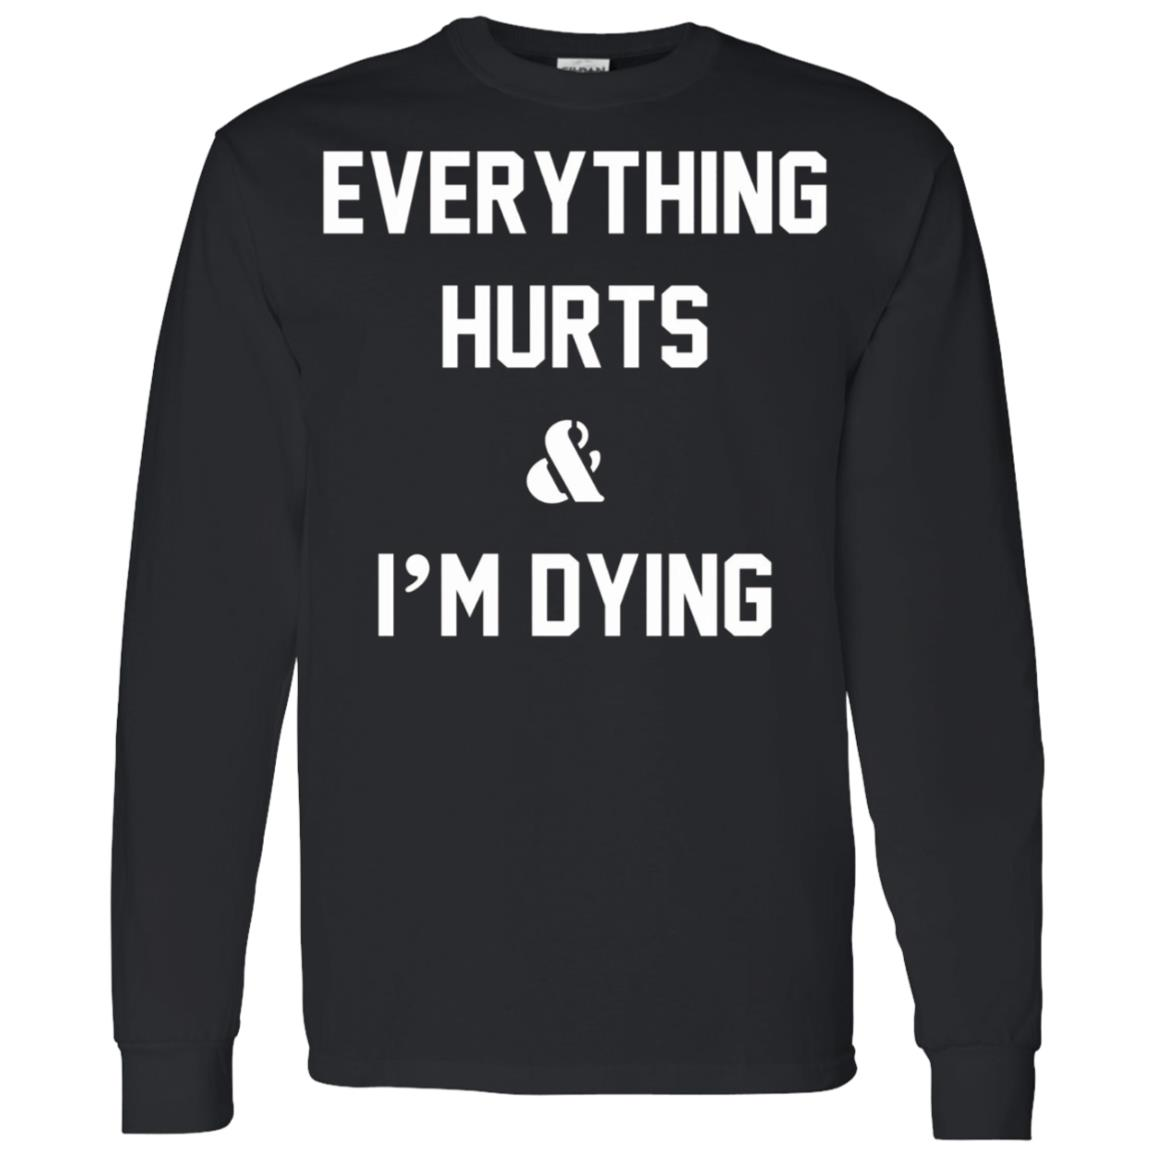 Everything Hurts & I'm Dying – Workout Men Long Sleeve T-Shirt